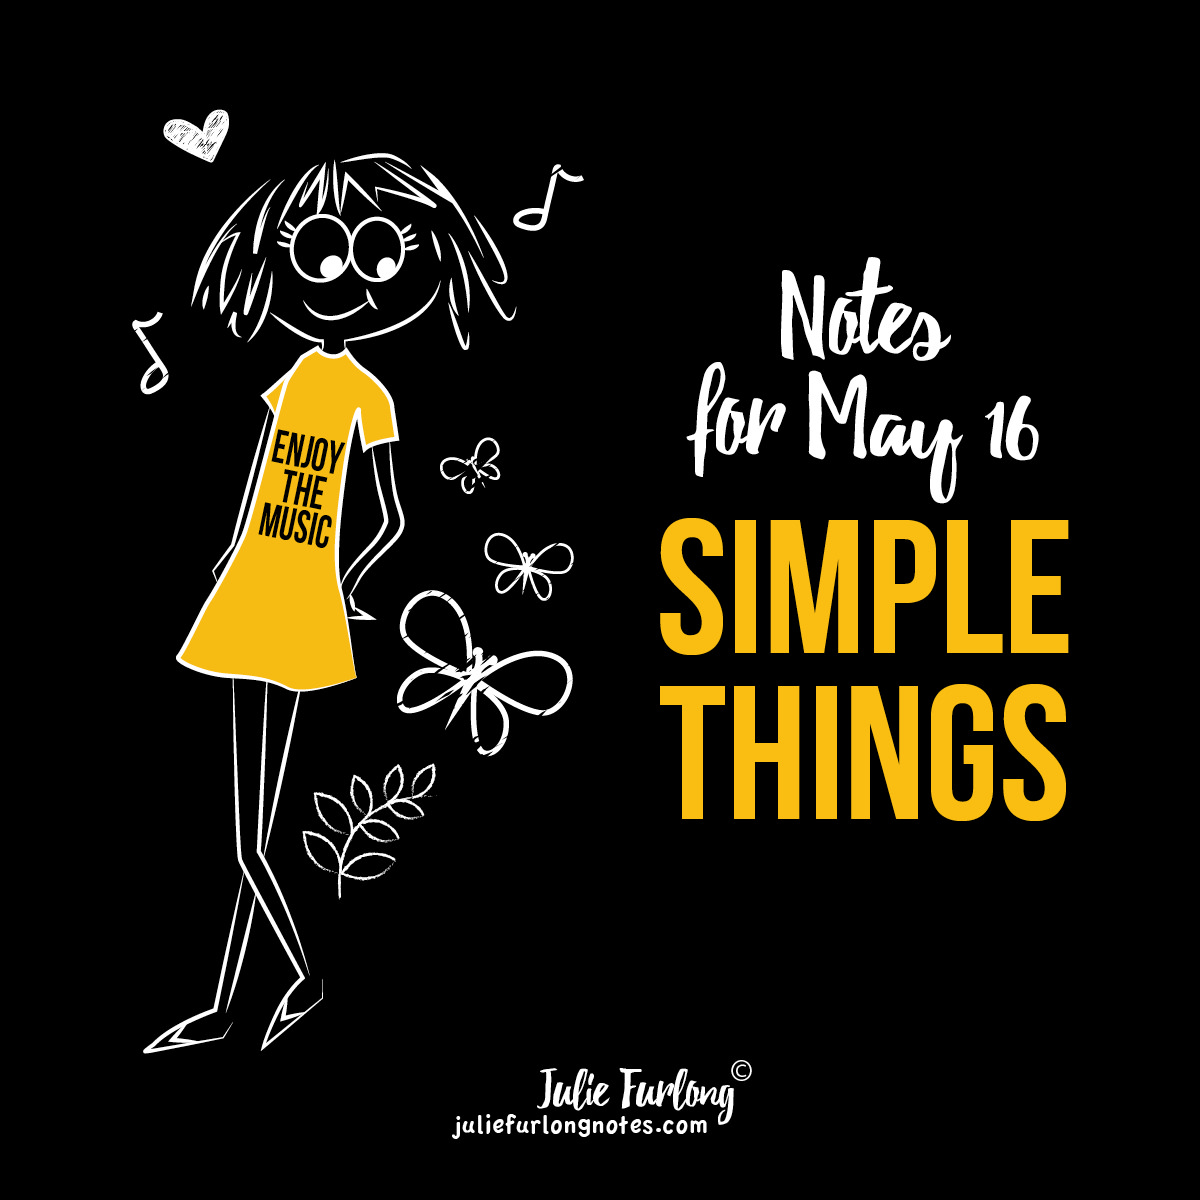 Julie-Furlong-Notes-Simple-Things